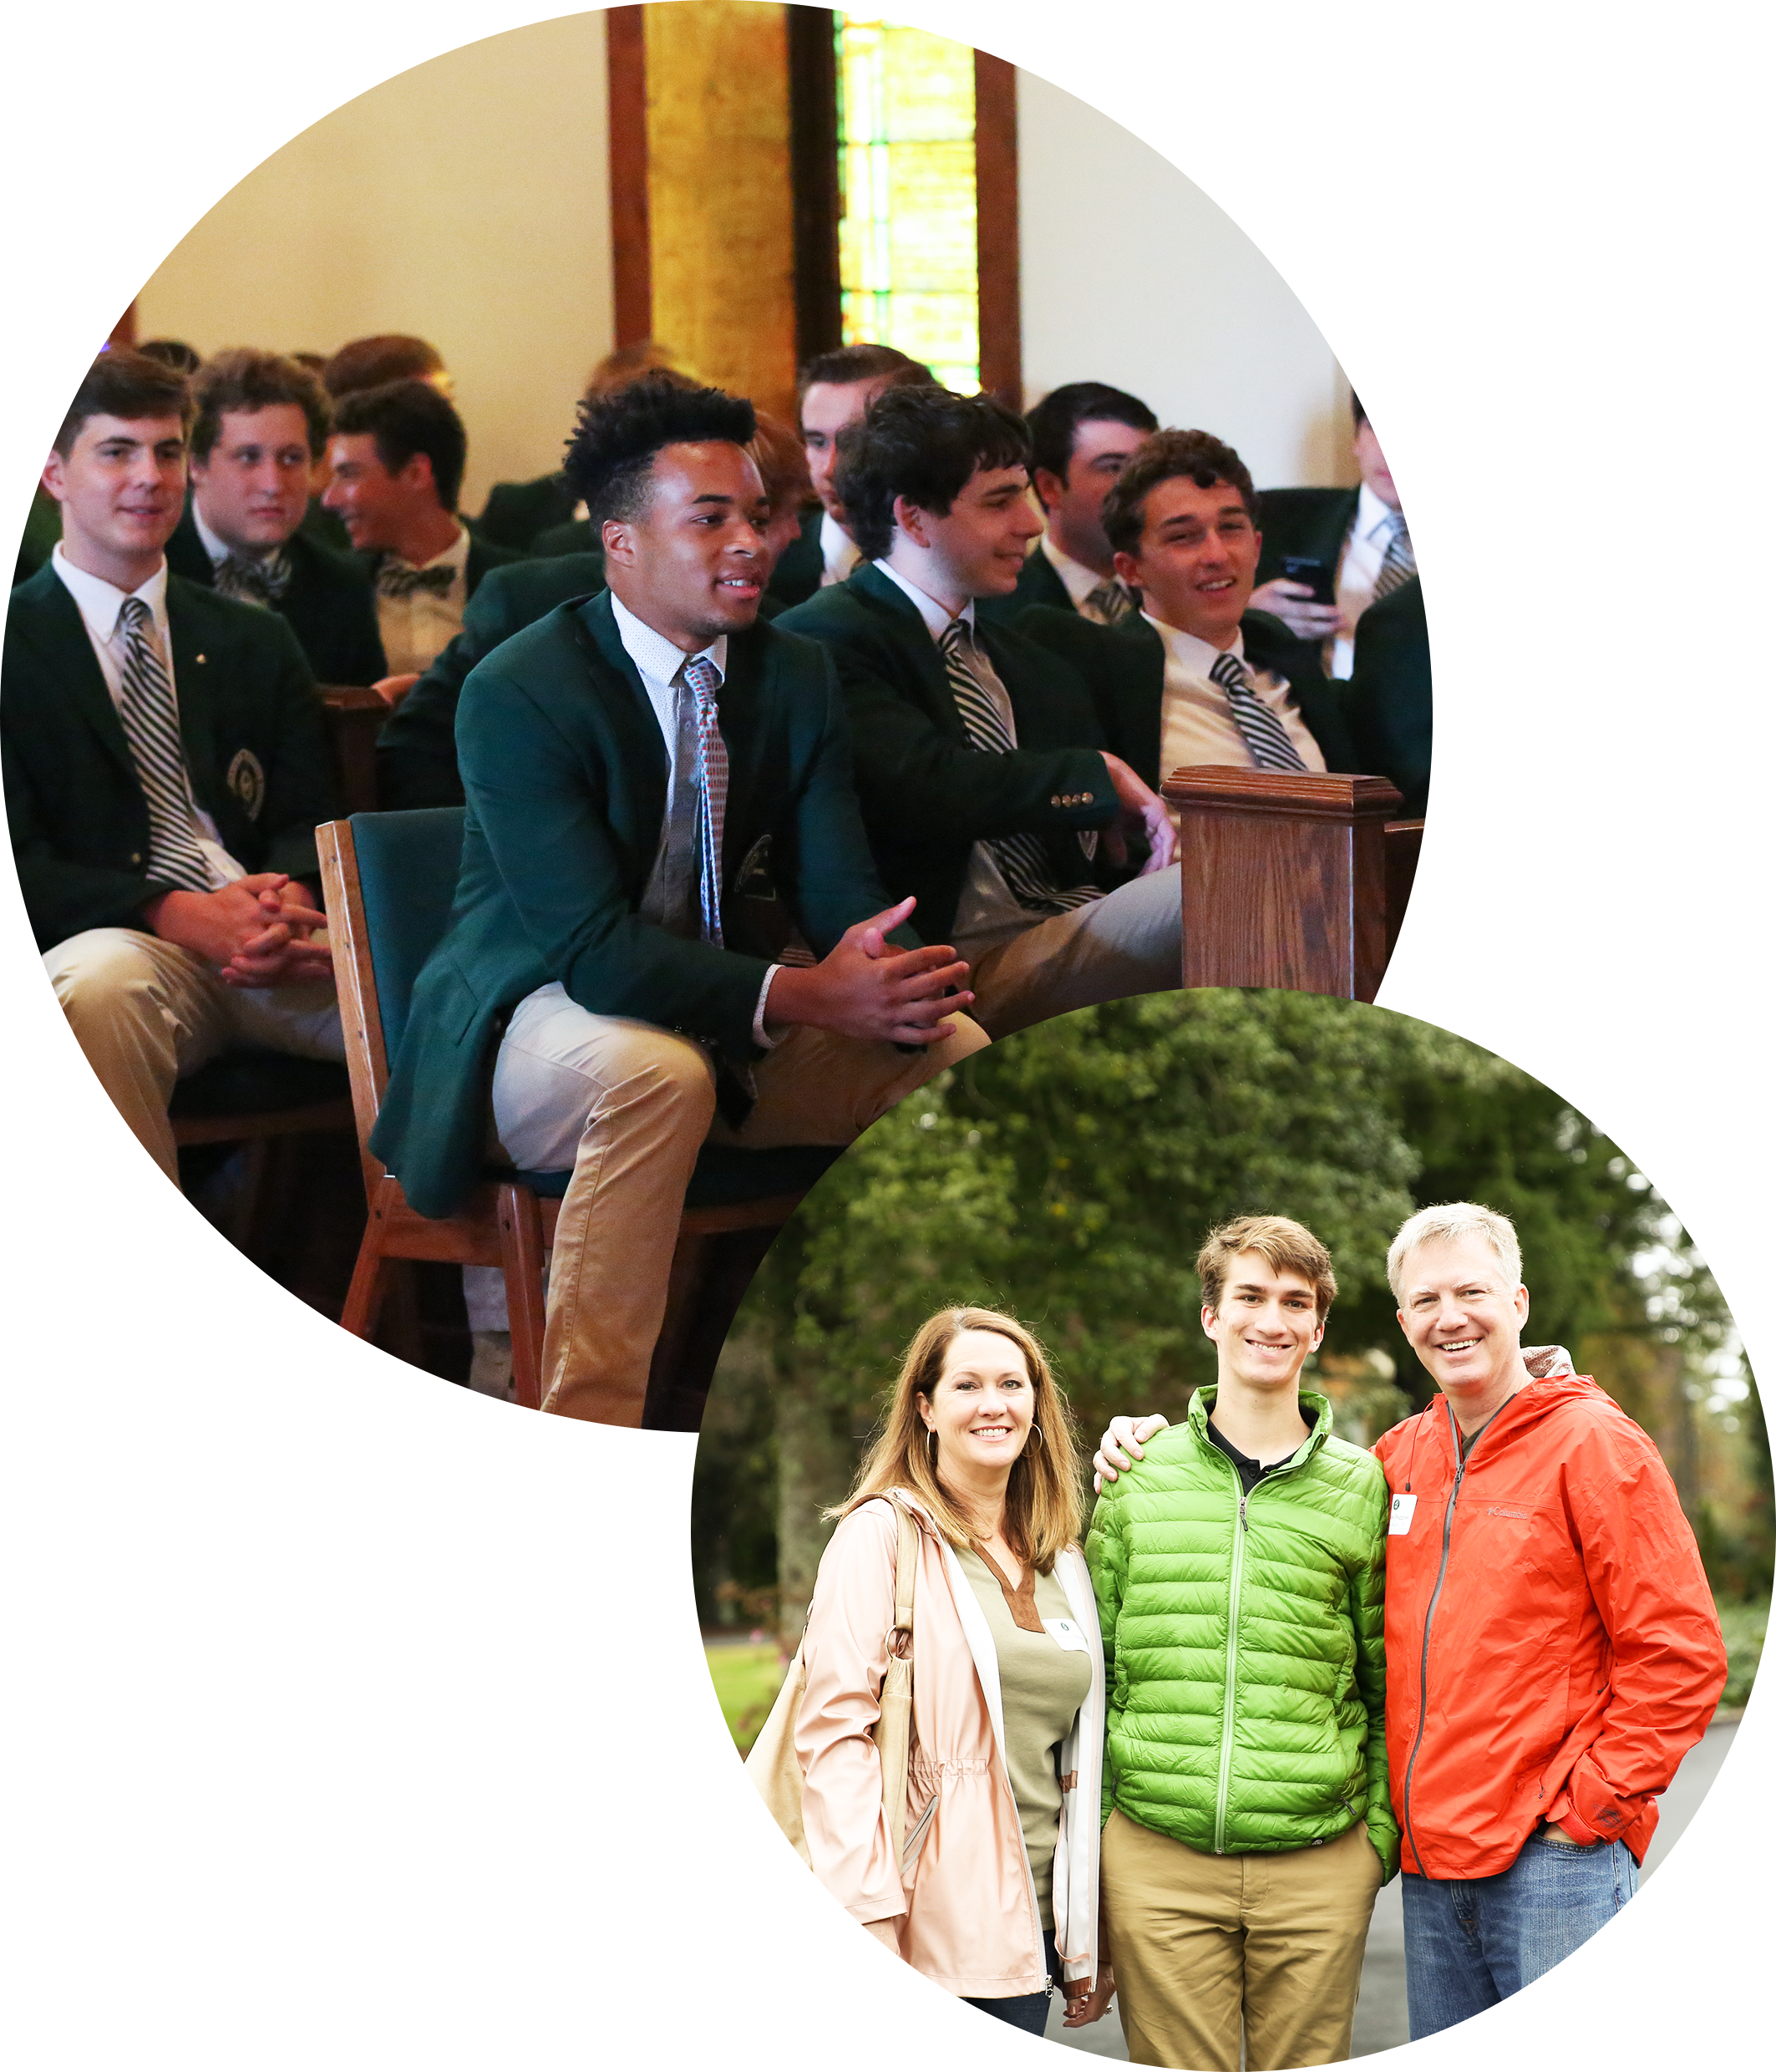 photo of students at chapel and a family